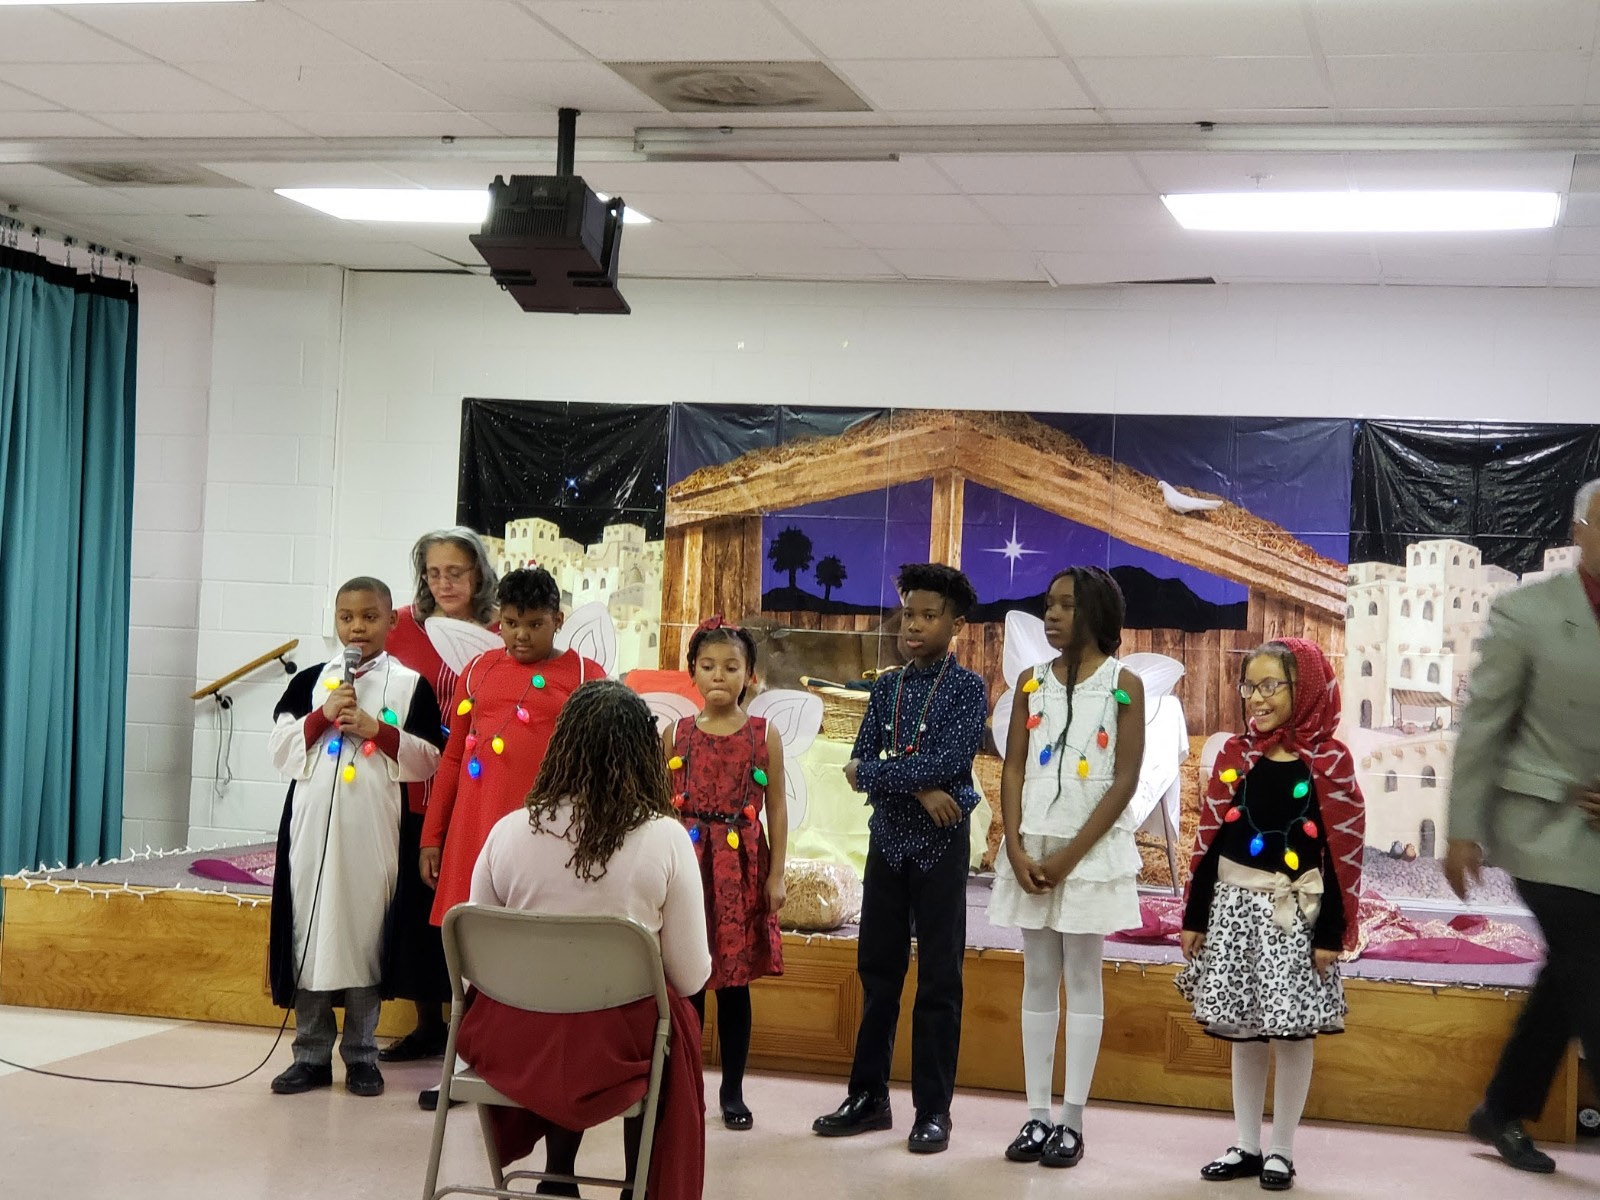 My sister Renee (back row) and her Sunday school class performing a Christmas program.  My great niece is in the red and black dress. Photo by Paula Cooper.